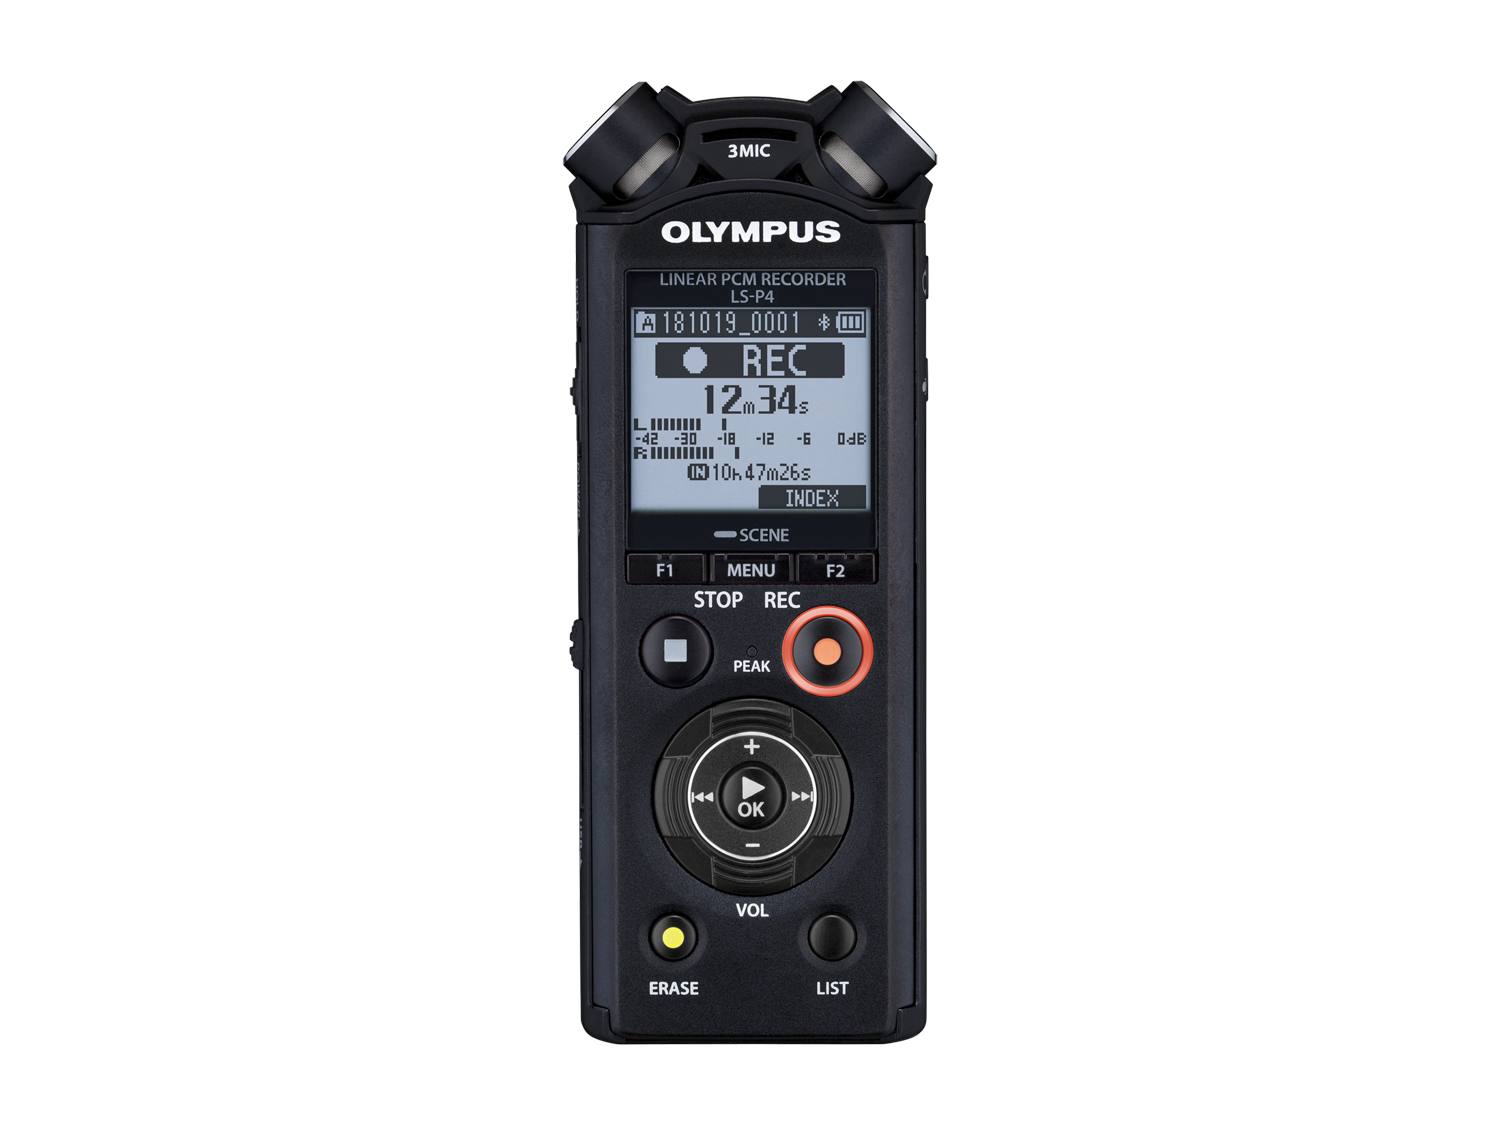 Диктофон Olympus LS-P4 black Linear PCM Recorder (V409160BE000) фото